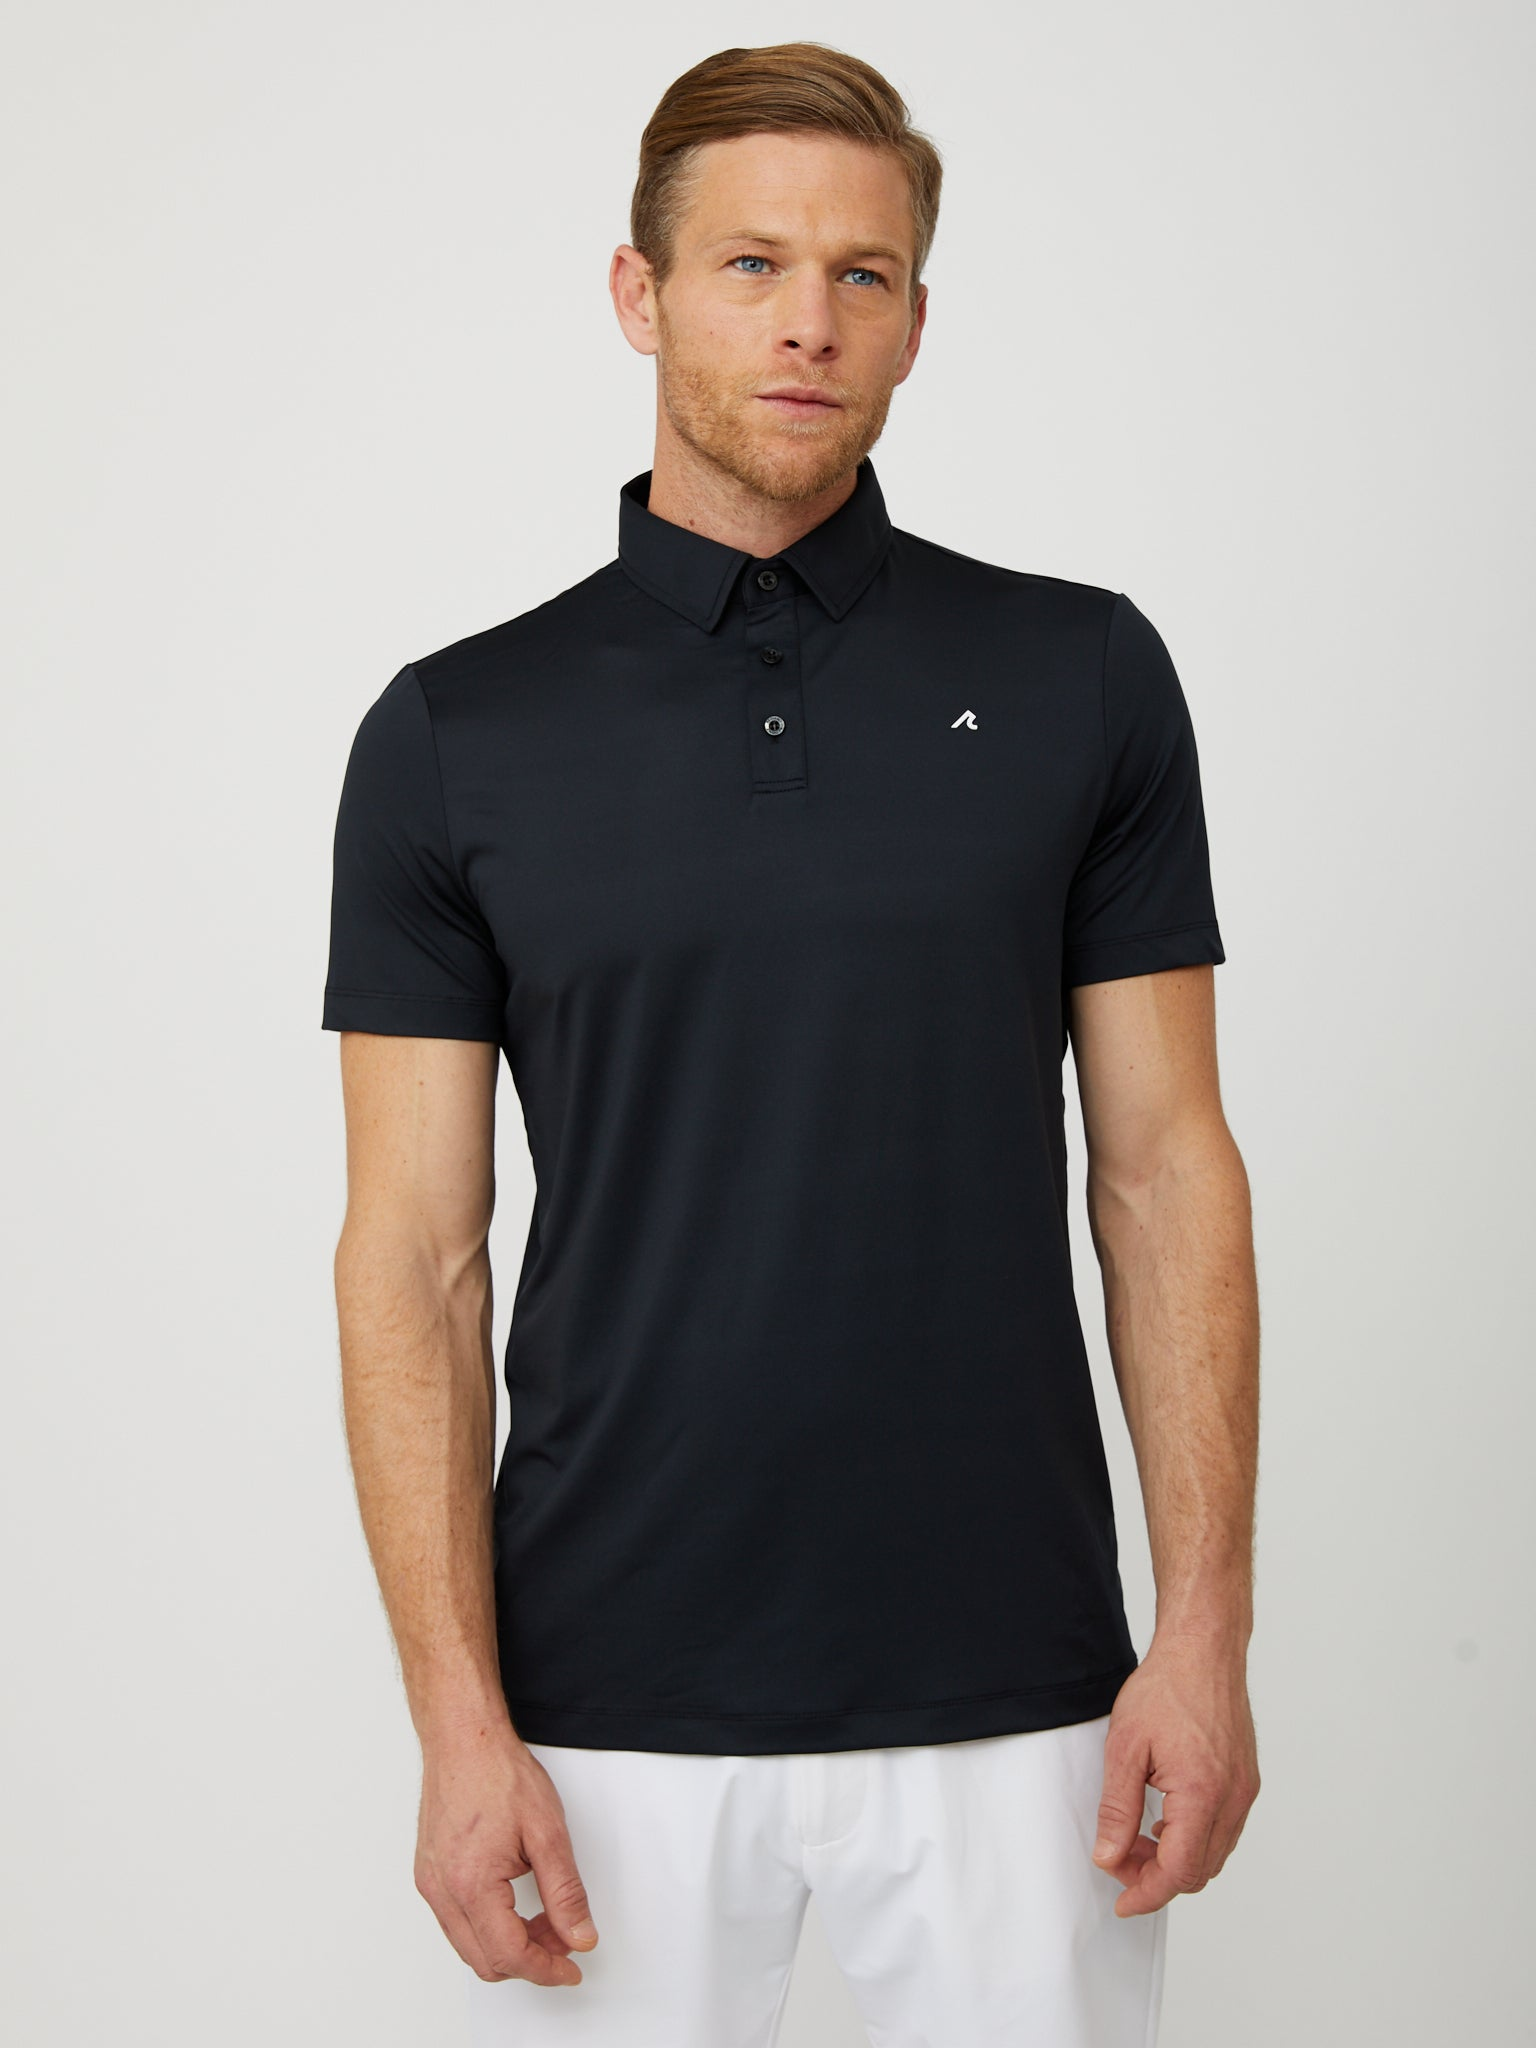 Degrom Polo in Black/White